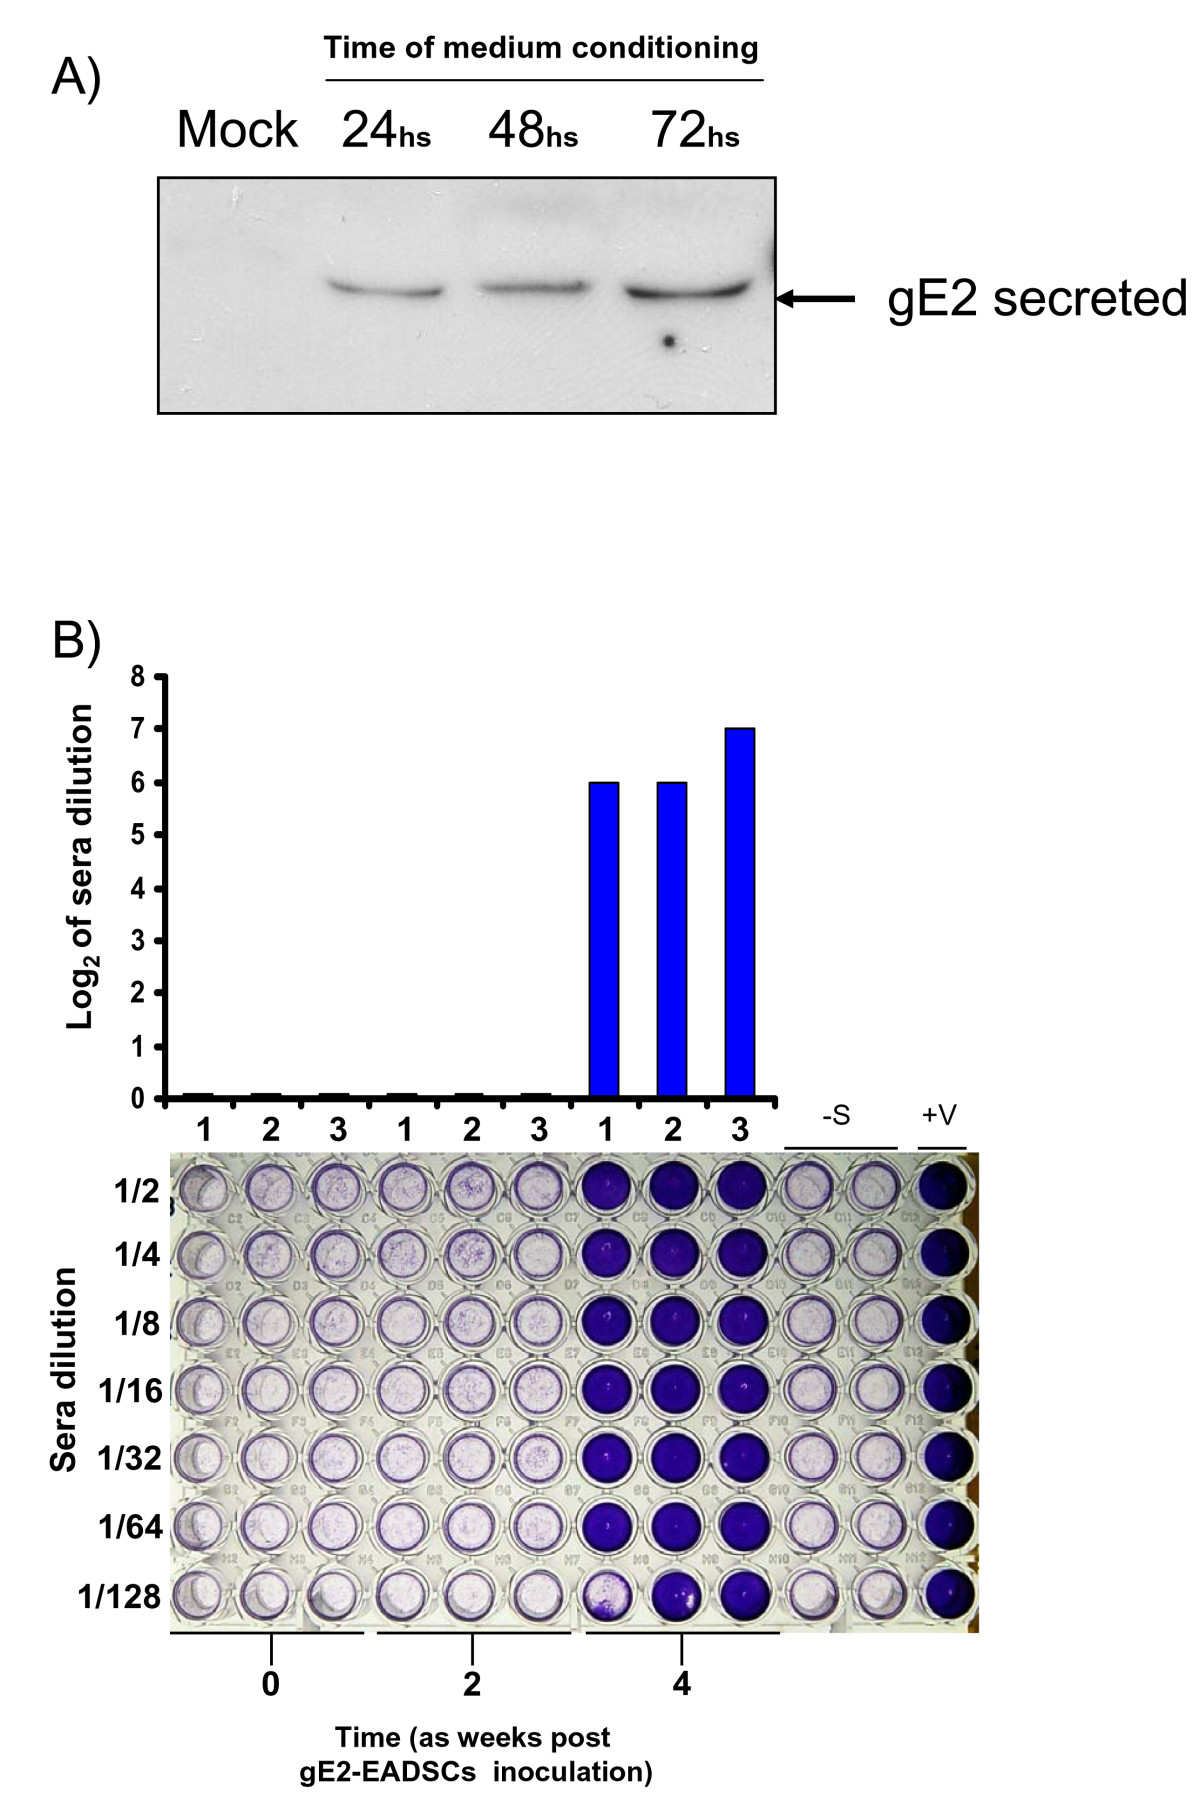 http://static-content.springer.com/image/art%3A10.1186%2F1471-2121-11-73/MediaObjects/12860_2010_Article_518_Fig7_HTML.jpg